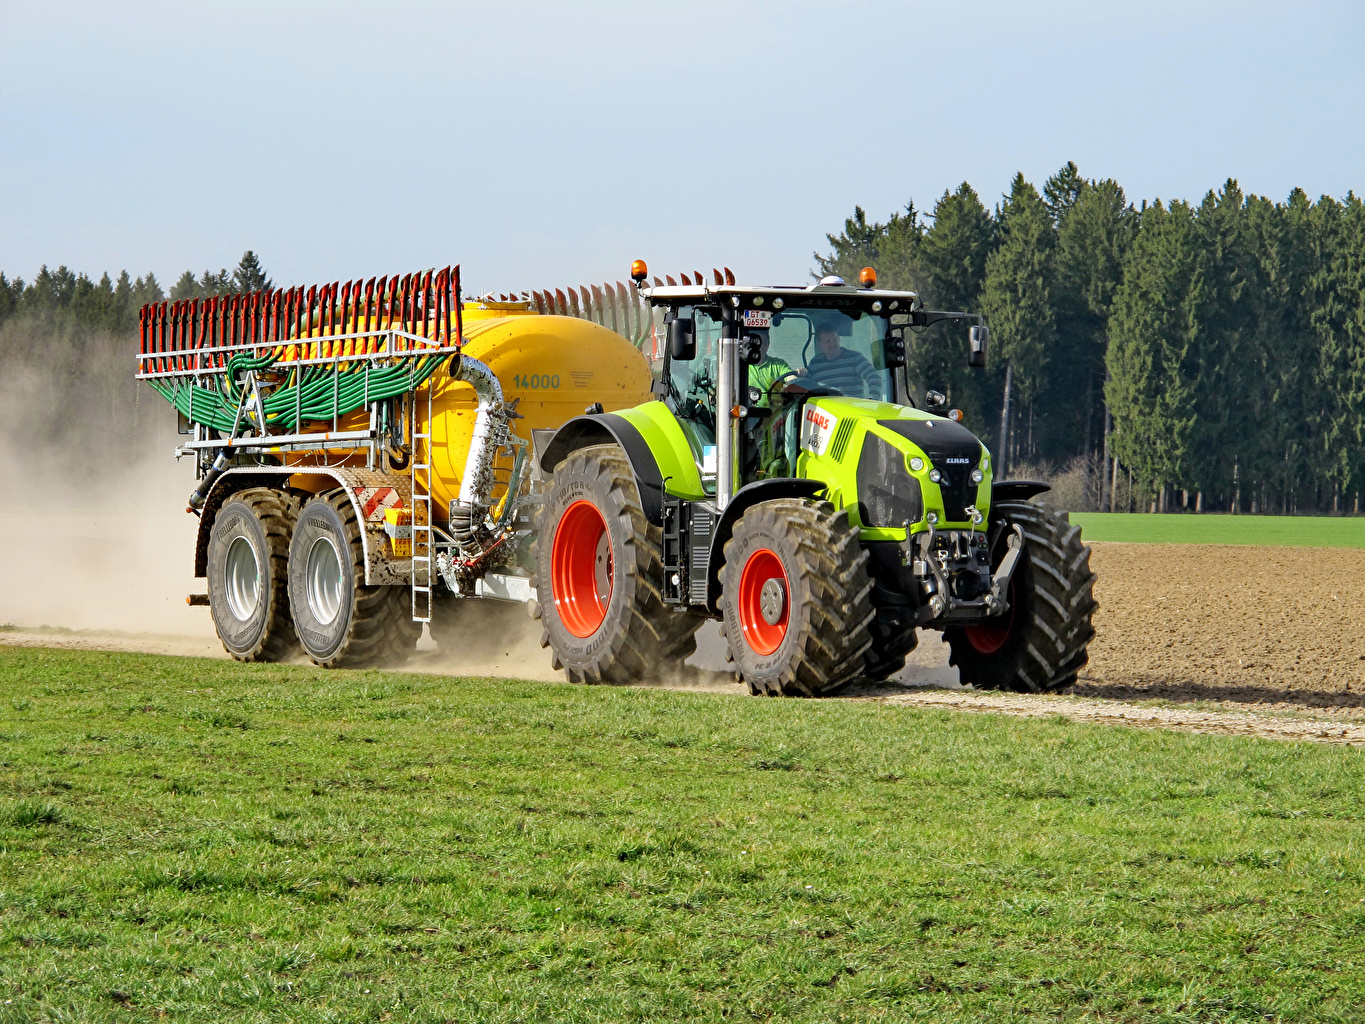 Photo Agricultural machinery Tractor 2013-17 Claas Axion 830 tractors